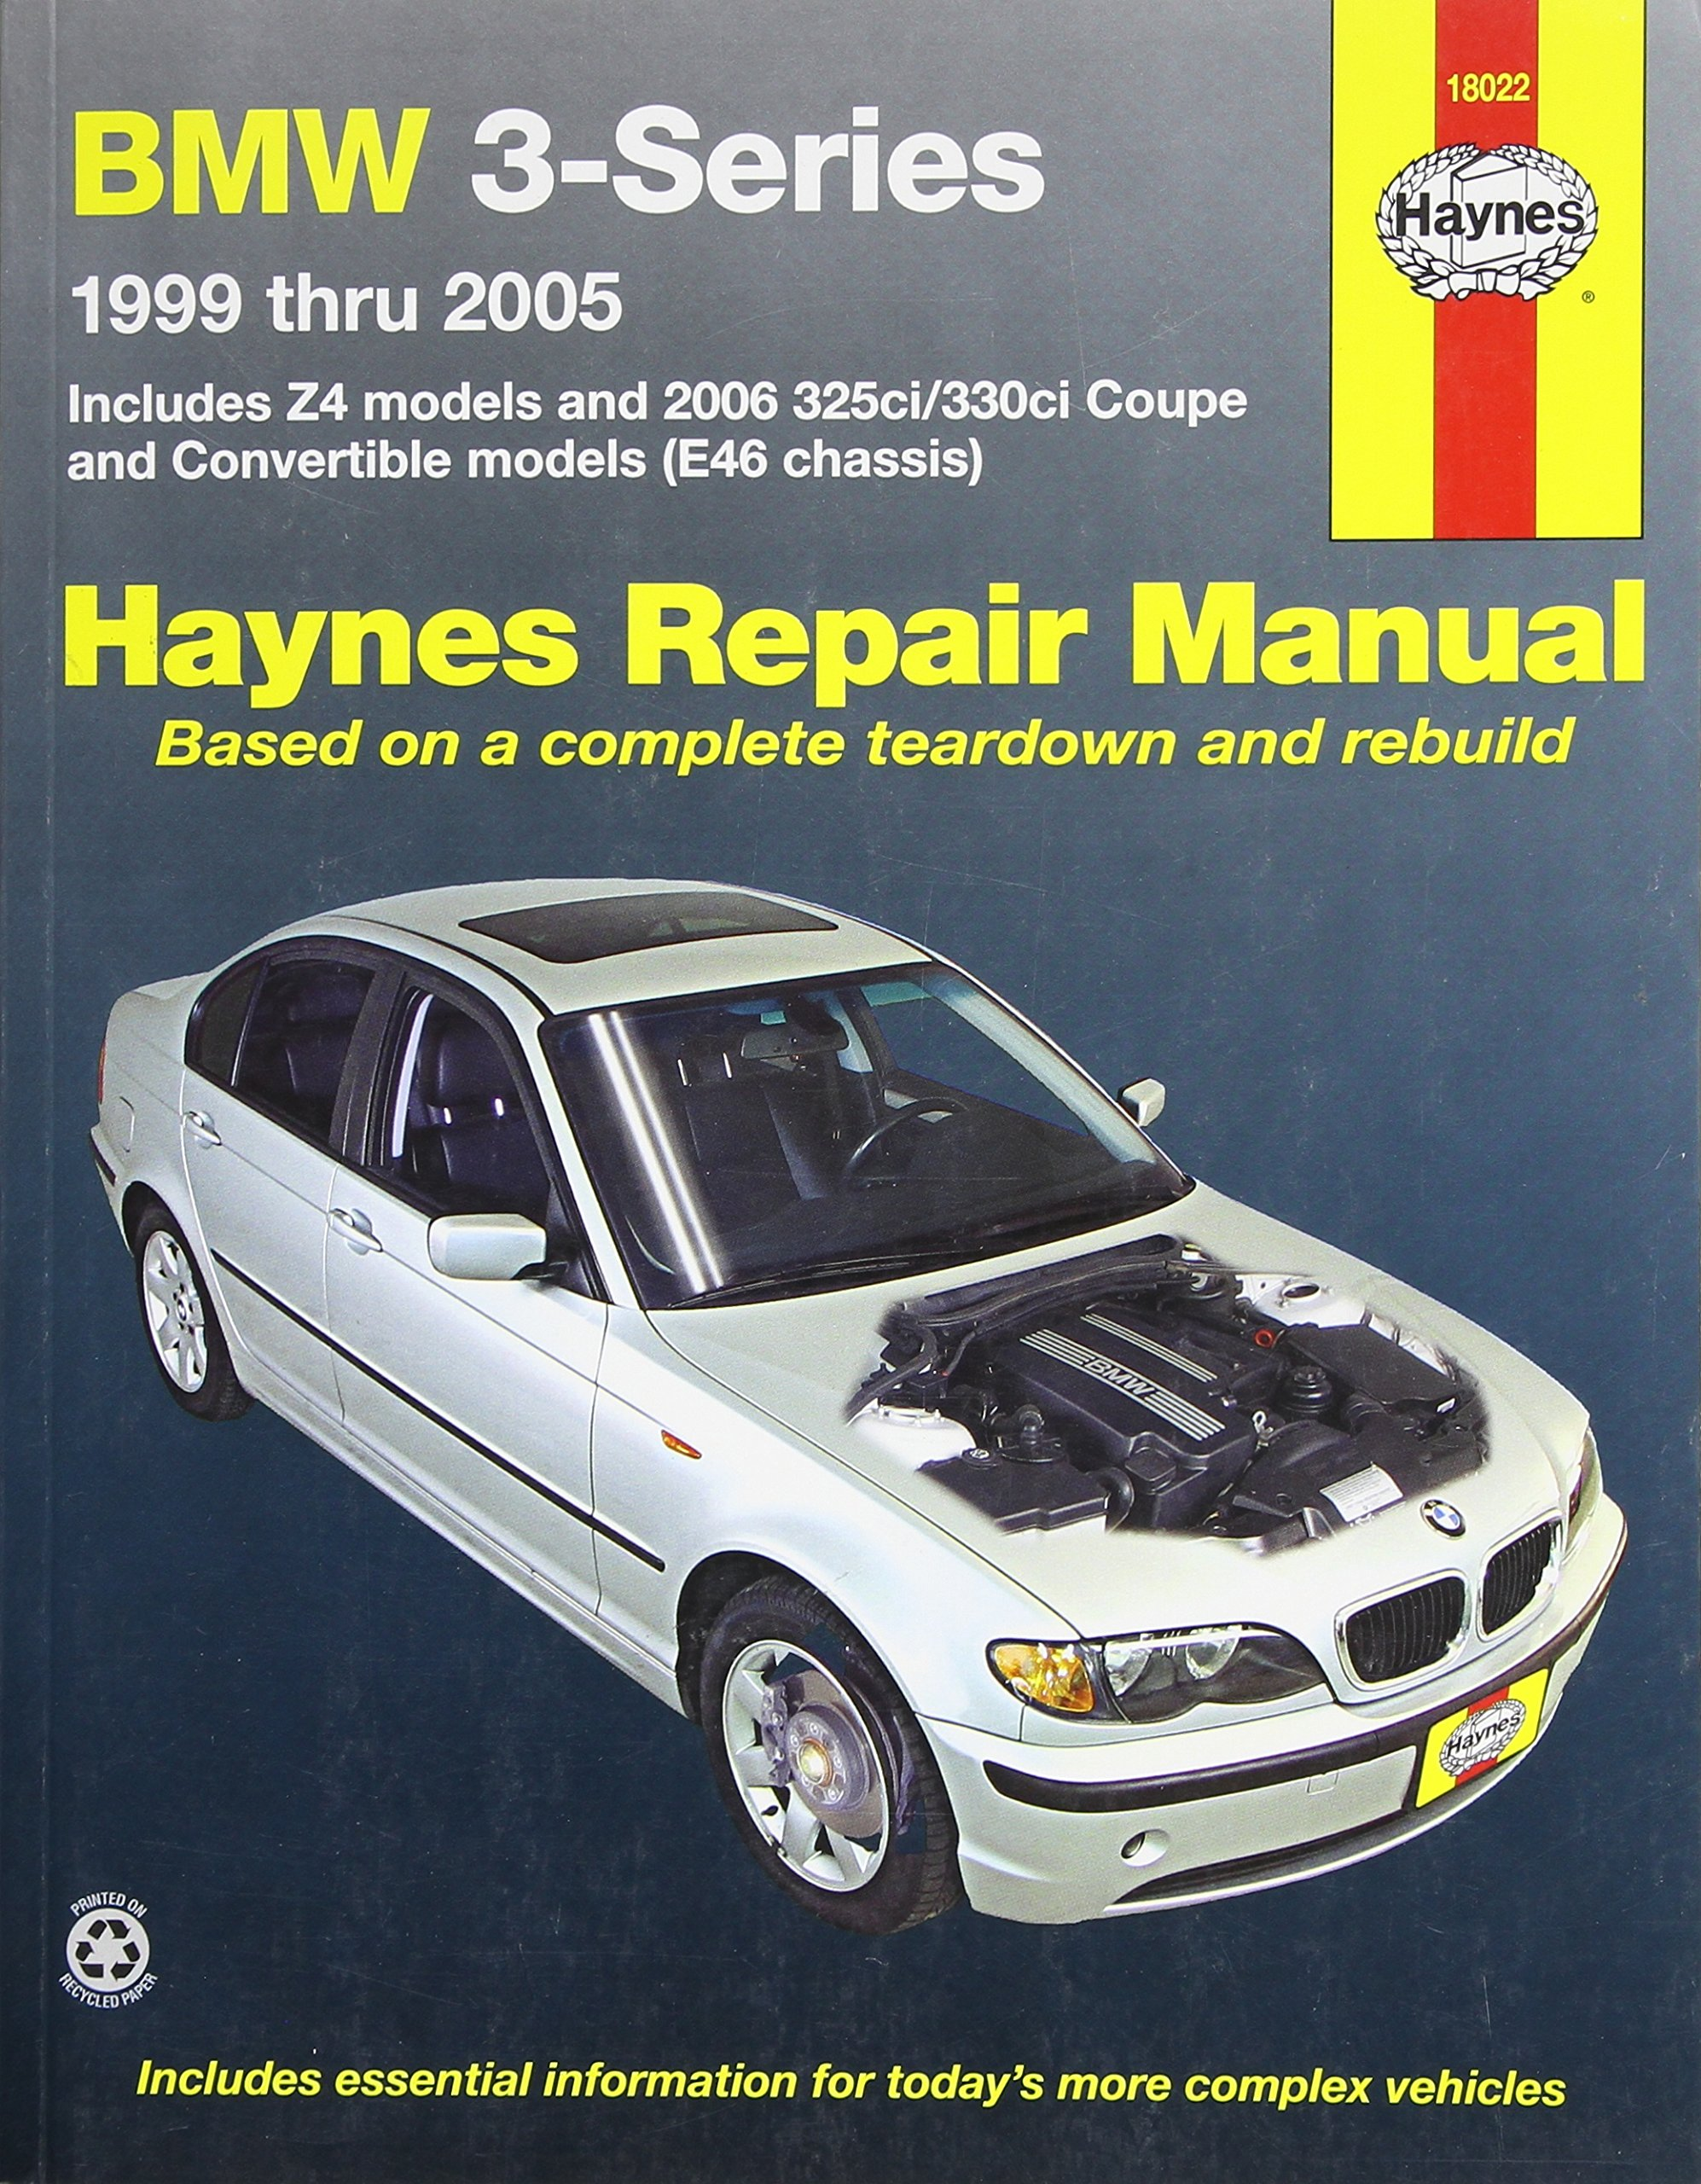 Haynes publications inc 18022 repair manual 0038345180224 amazon com books